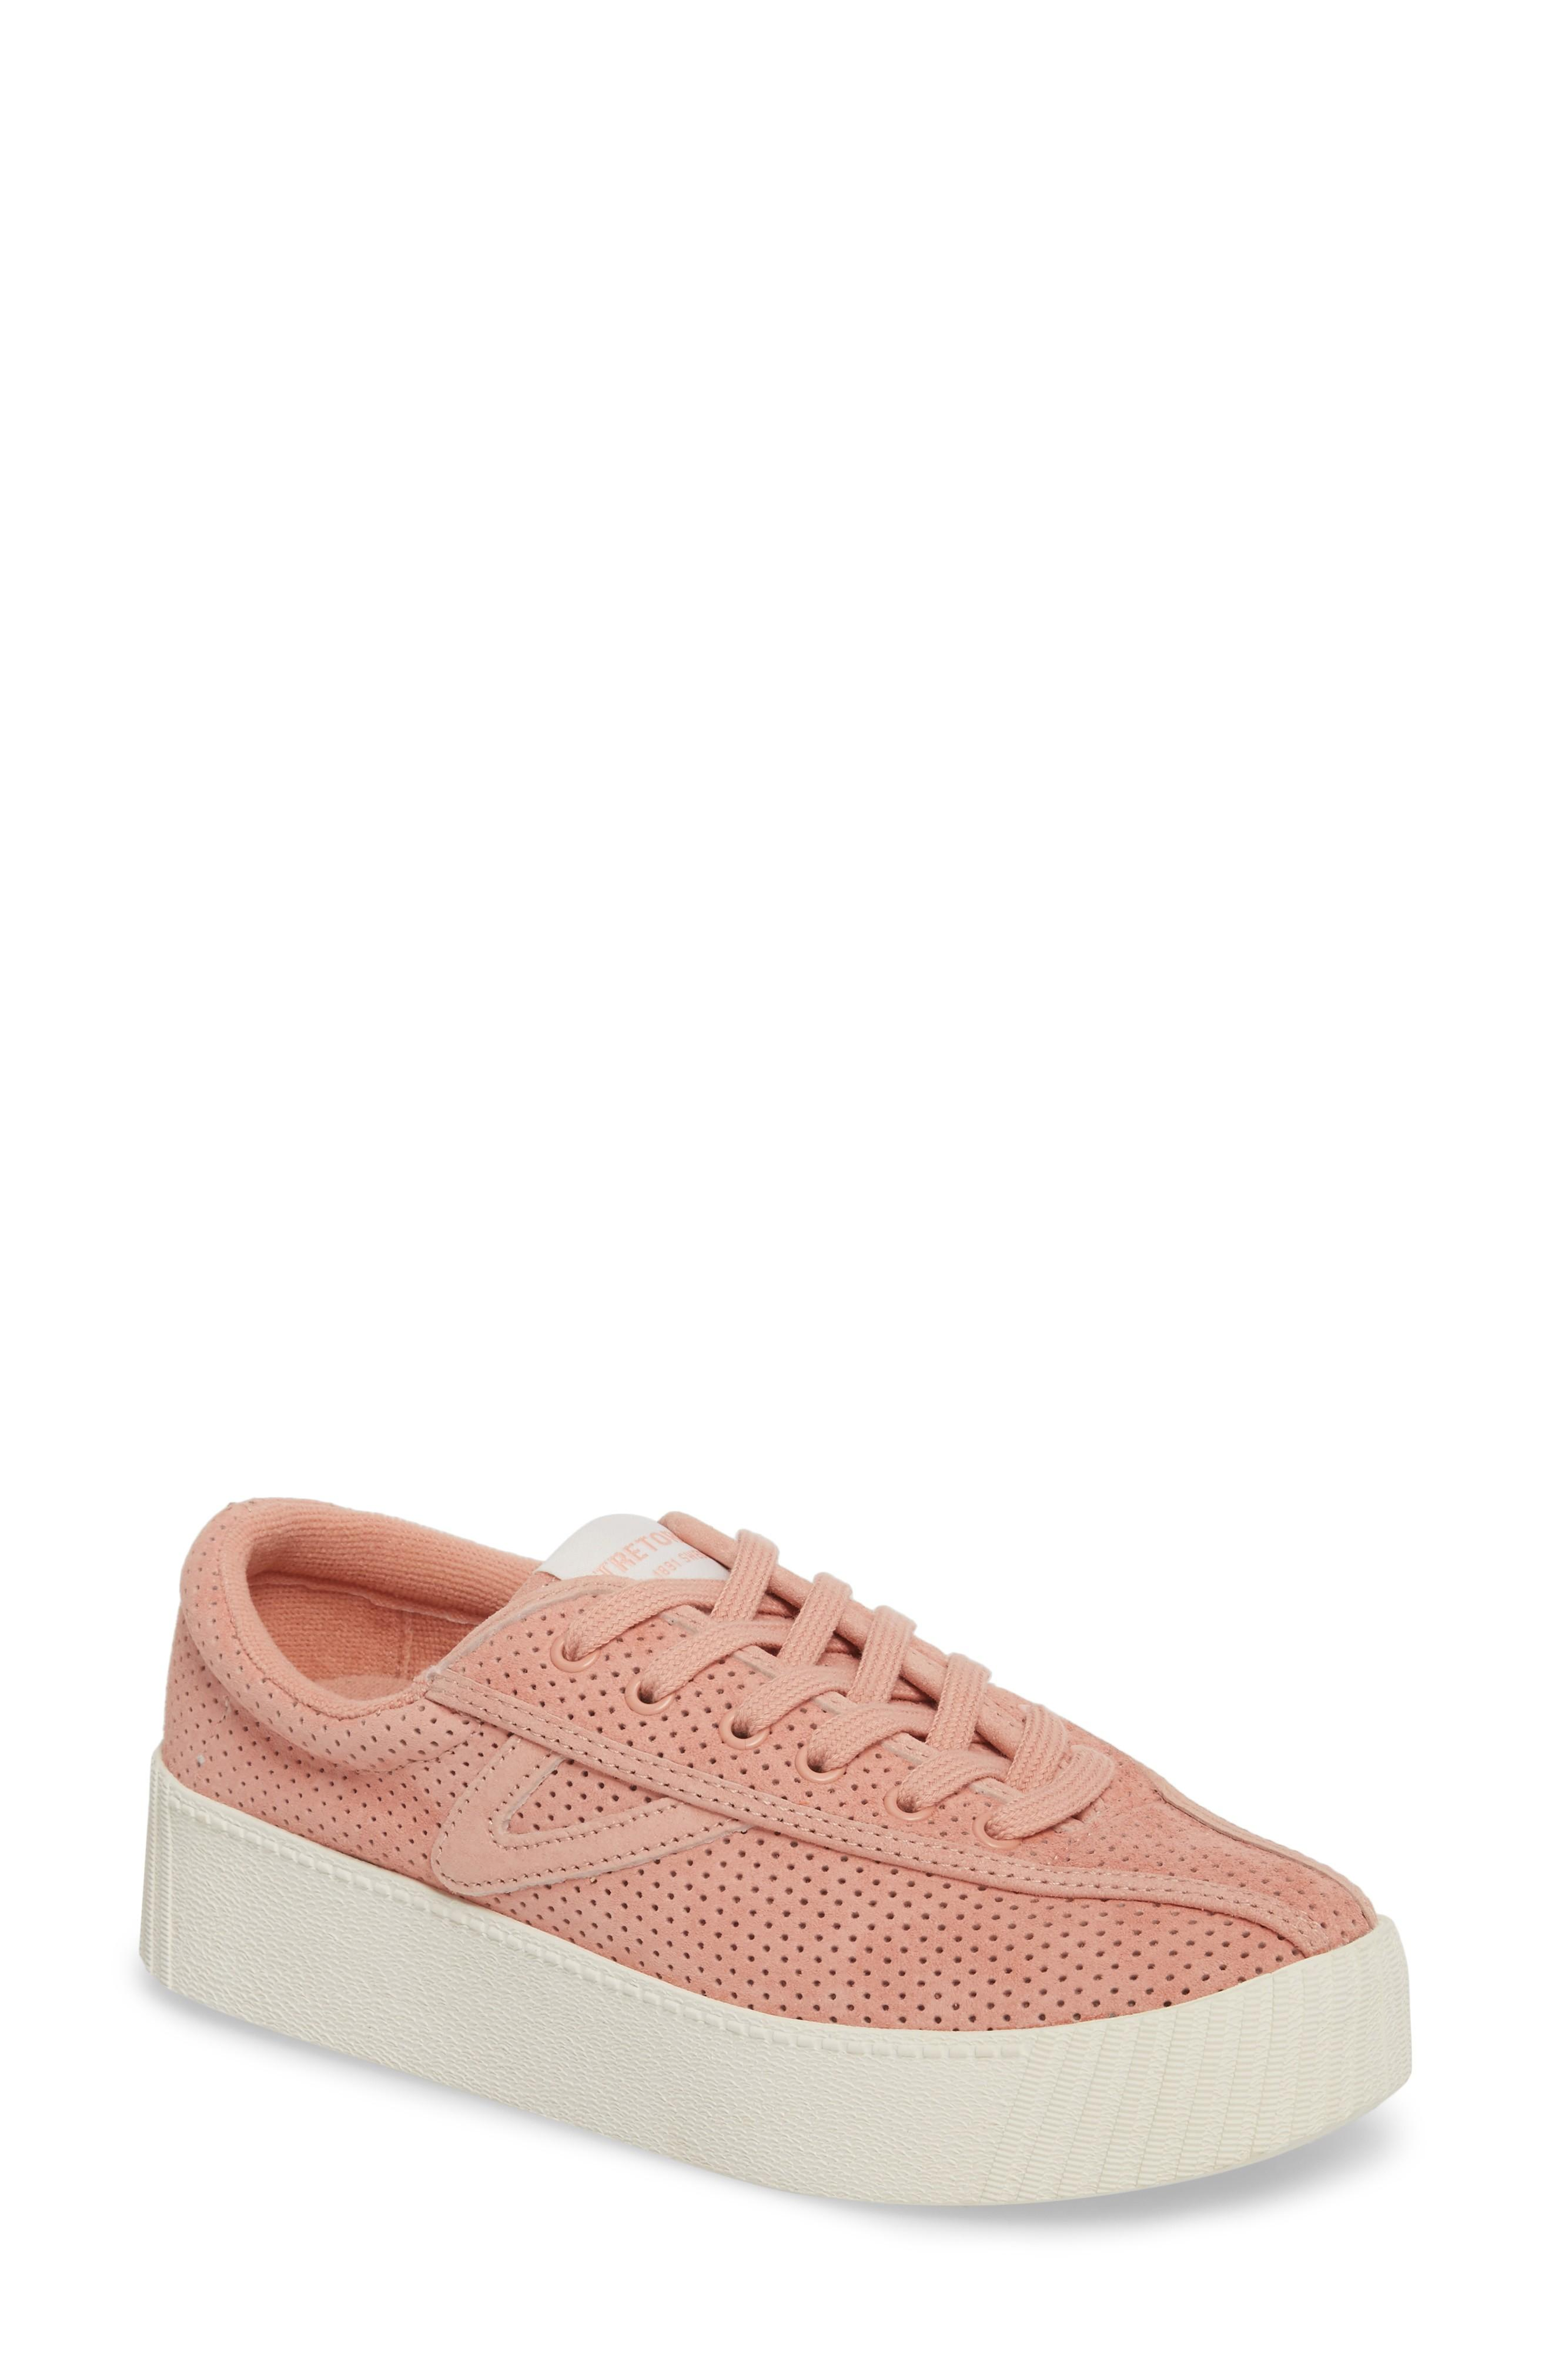 Tretorn Women's Nylite Bold Perforated Nubuck Leather Lace Up Platform Sneakers In Formula One/ Formula One